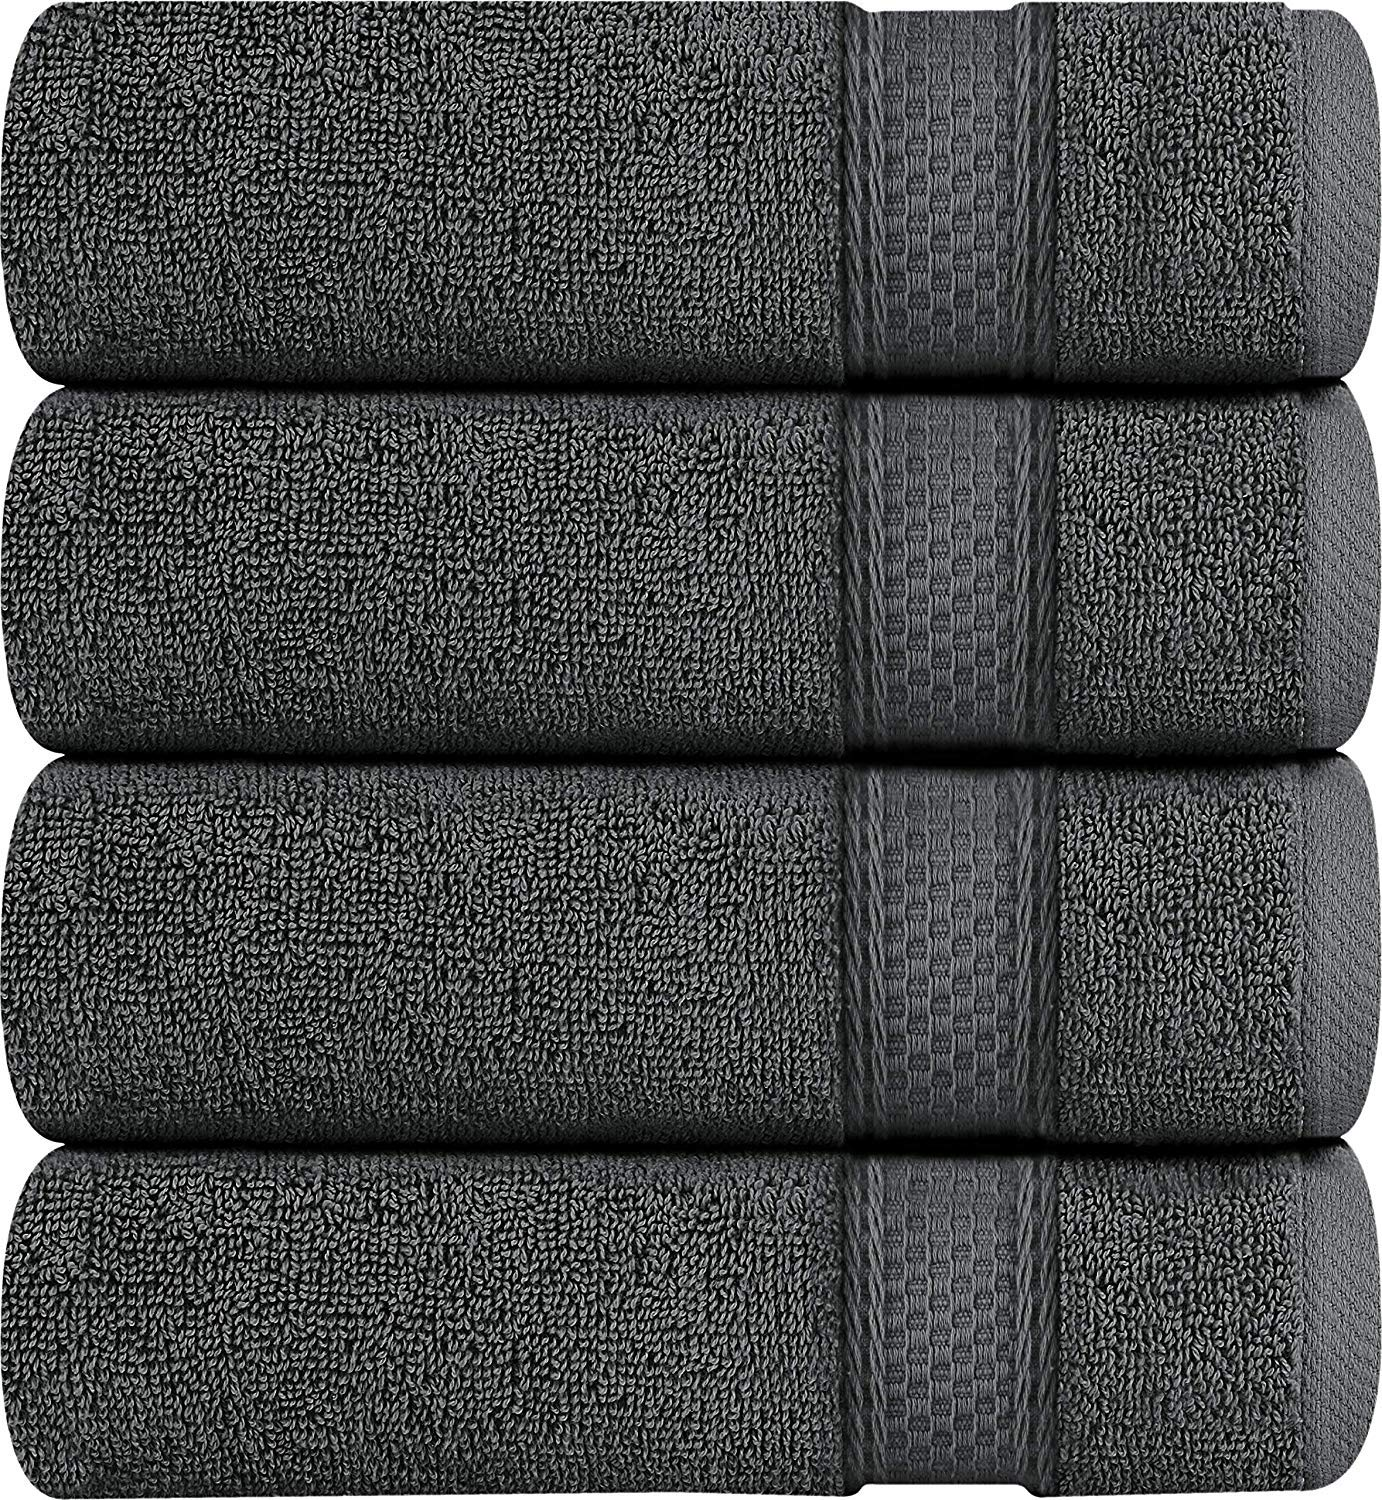 UUtopia Towels Premium Bath Towels, 4 Pack, 700 GSM Towels, Grey